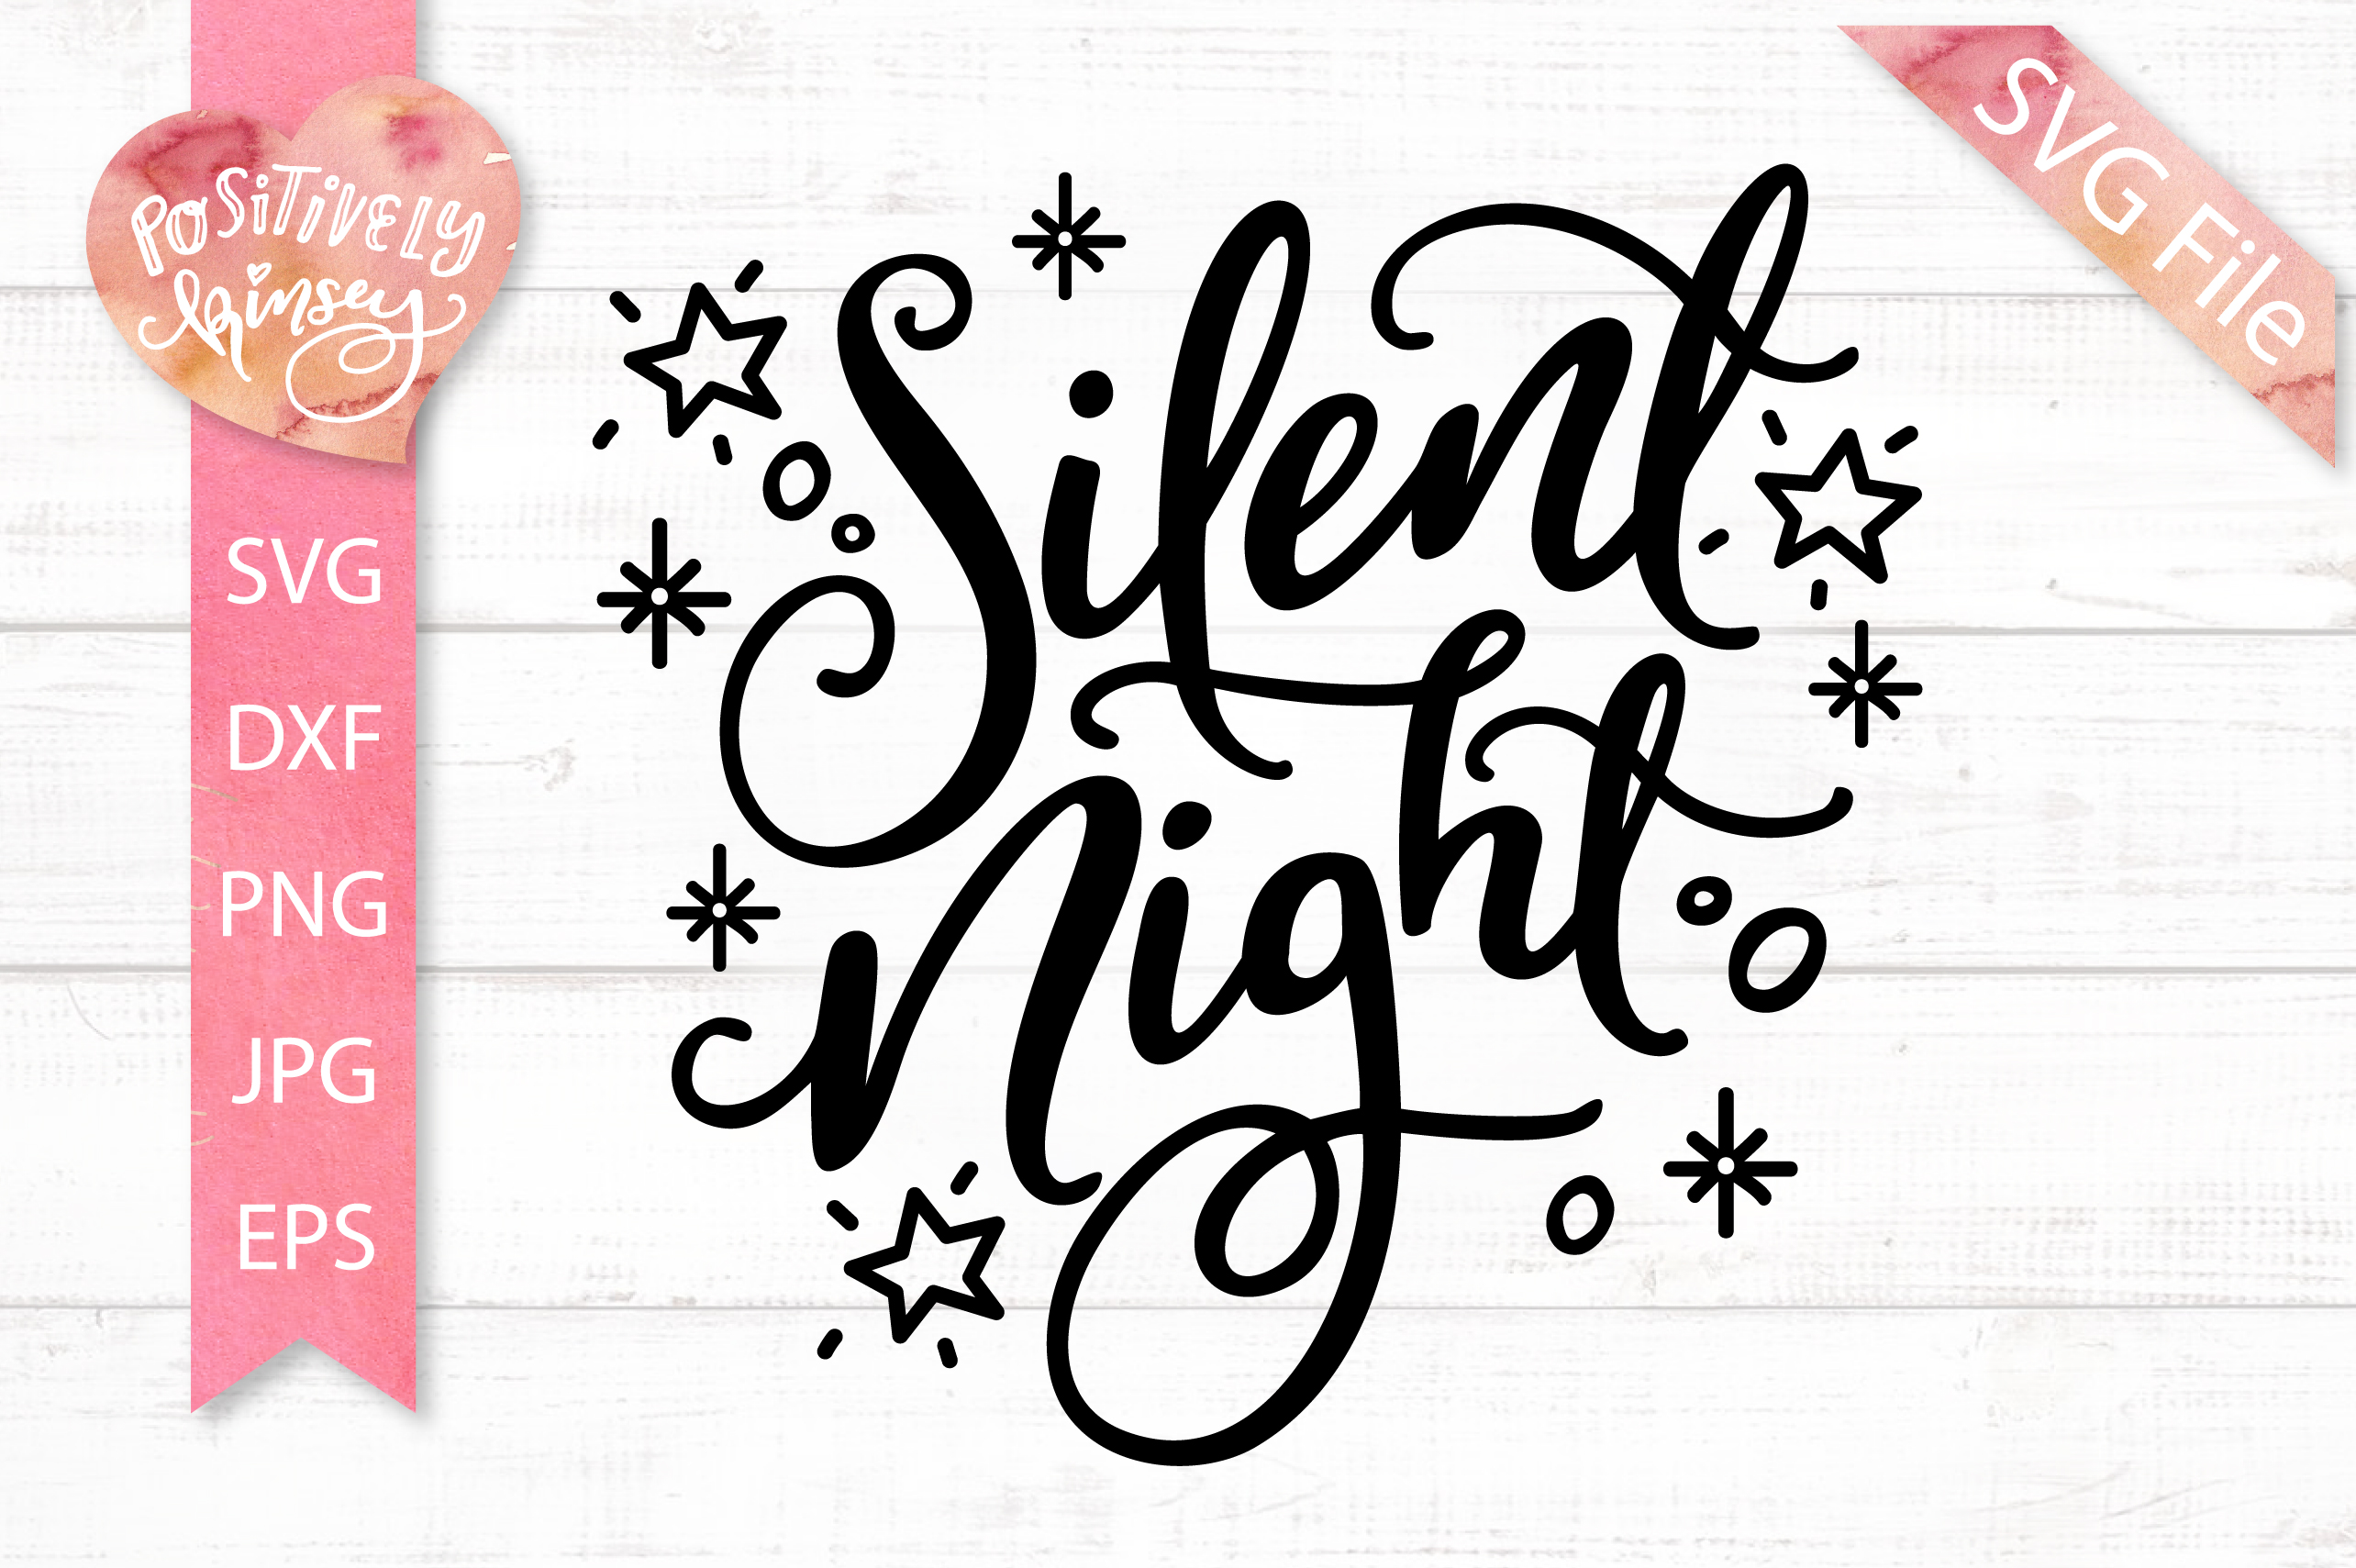 Silent Night SVG DXF PNG EPS, Christmas Song SVG Design example image 2